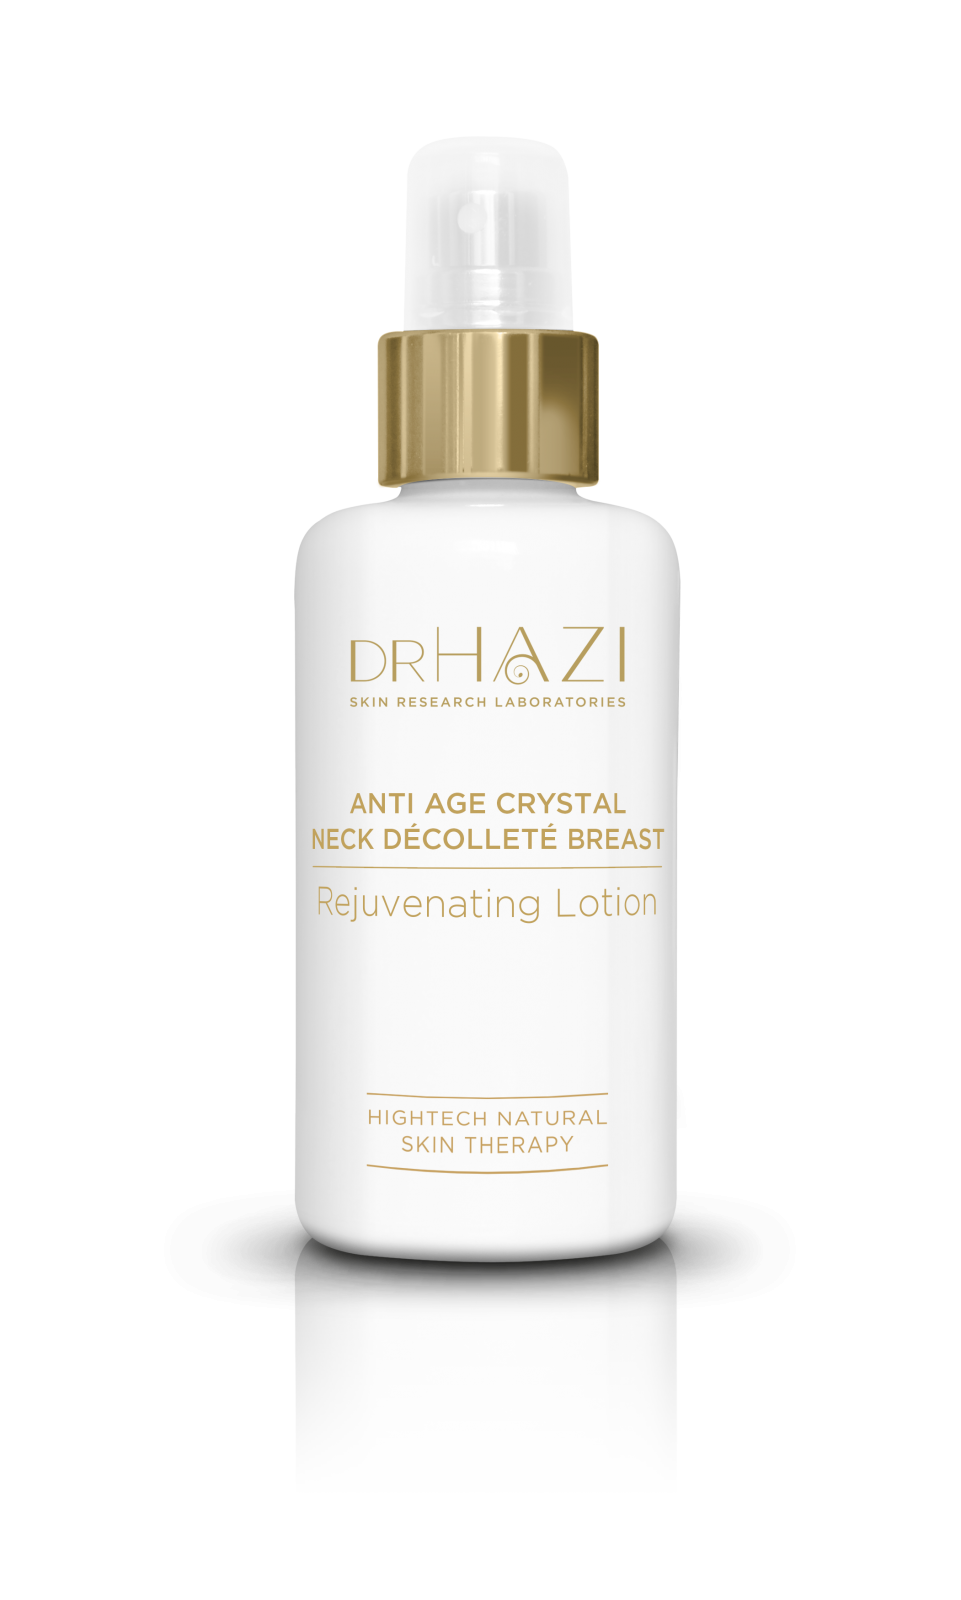 Luxury women skin rejuvenation with nanopeptids and crystals Crystal Neck, Decollete', Breast Rejuvenating Lotion